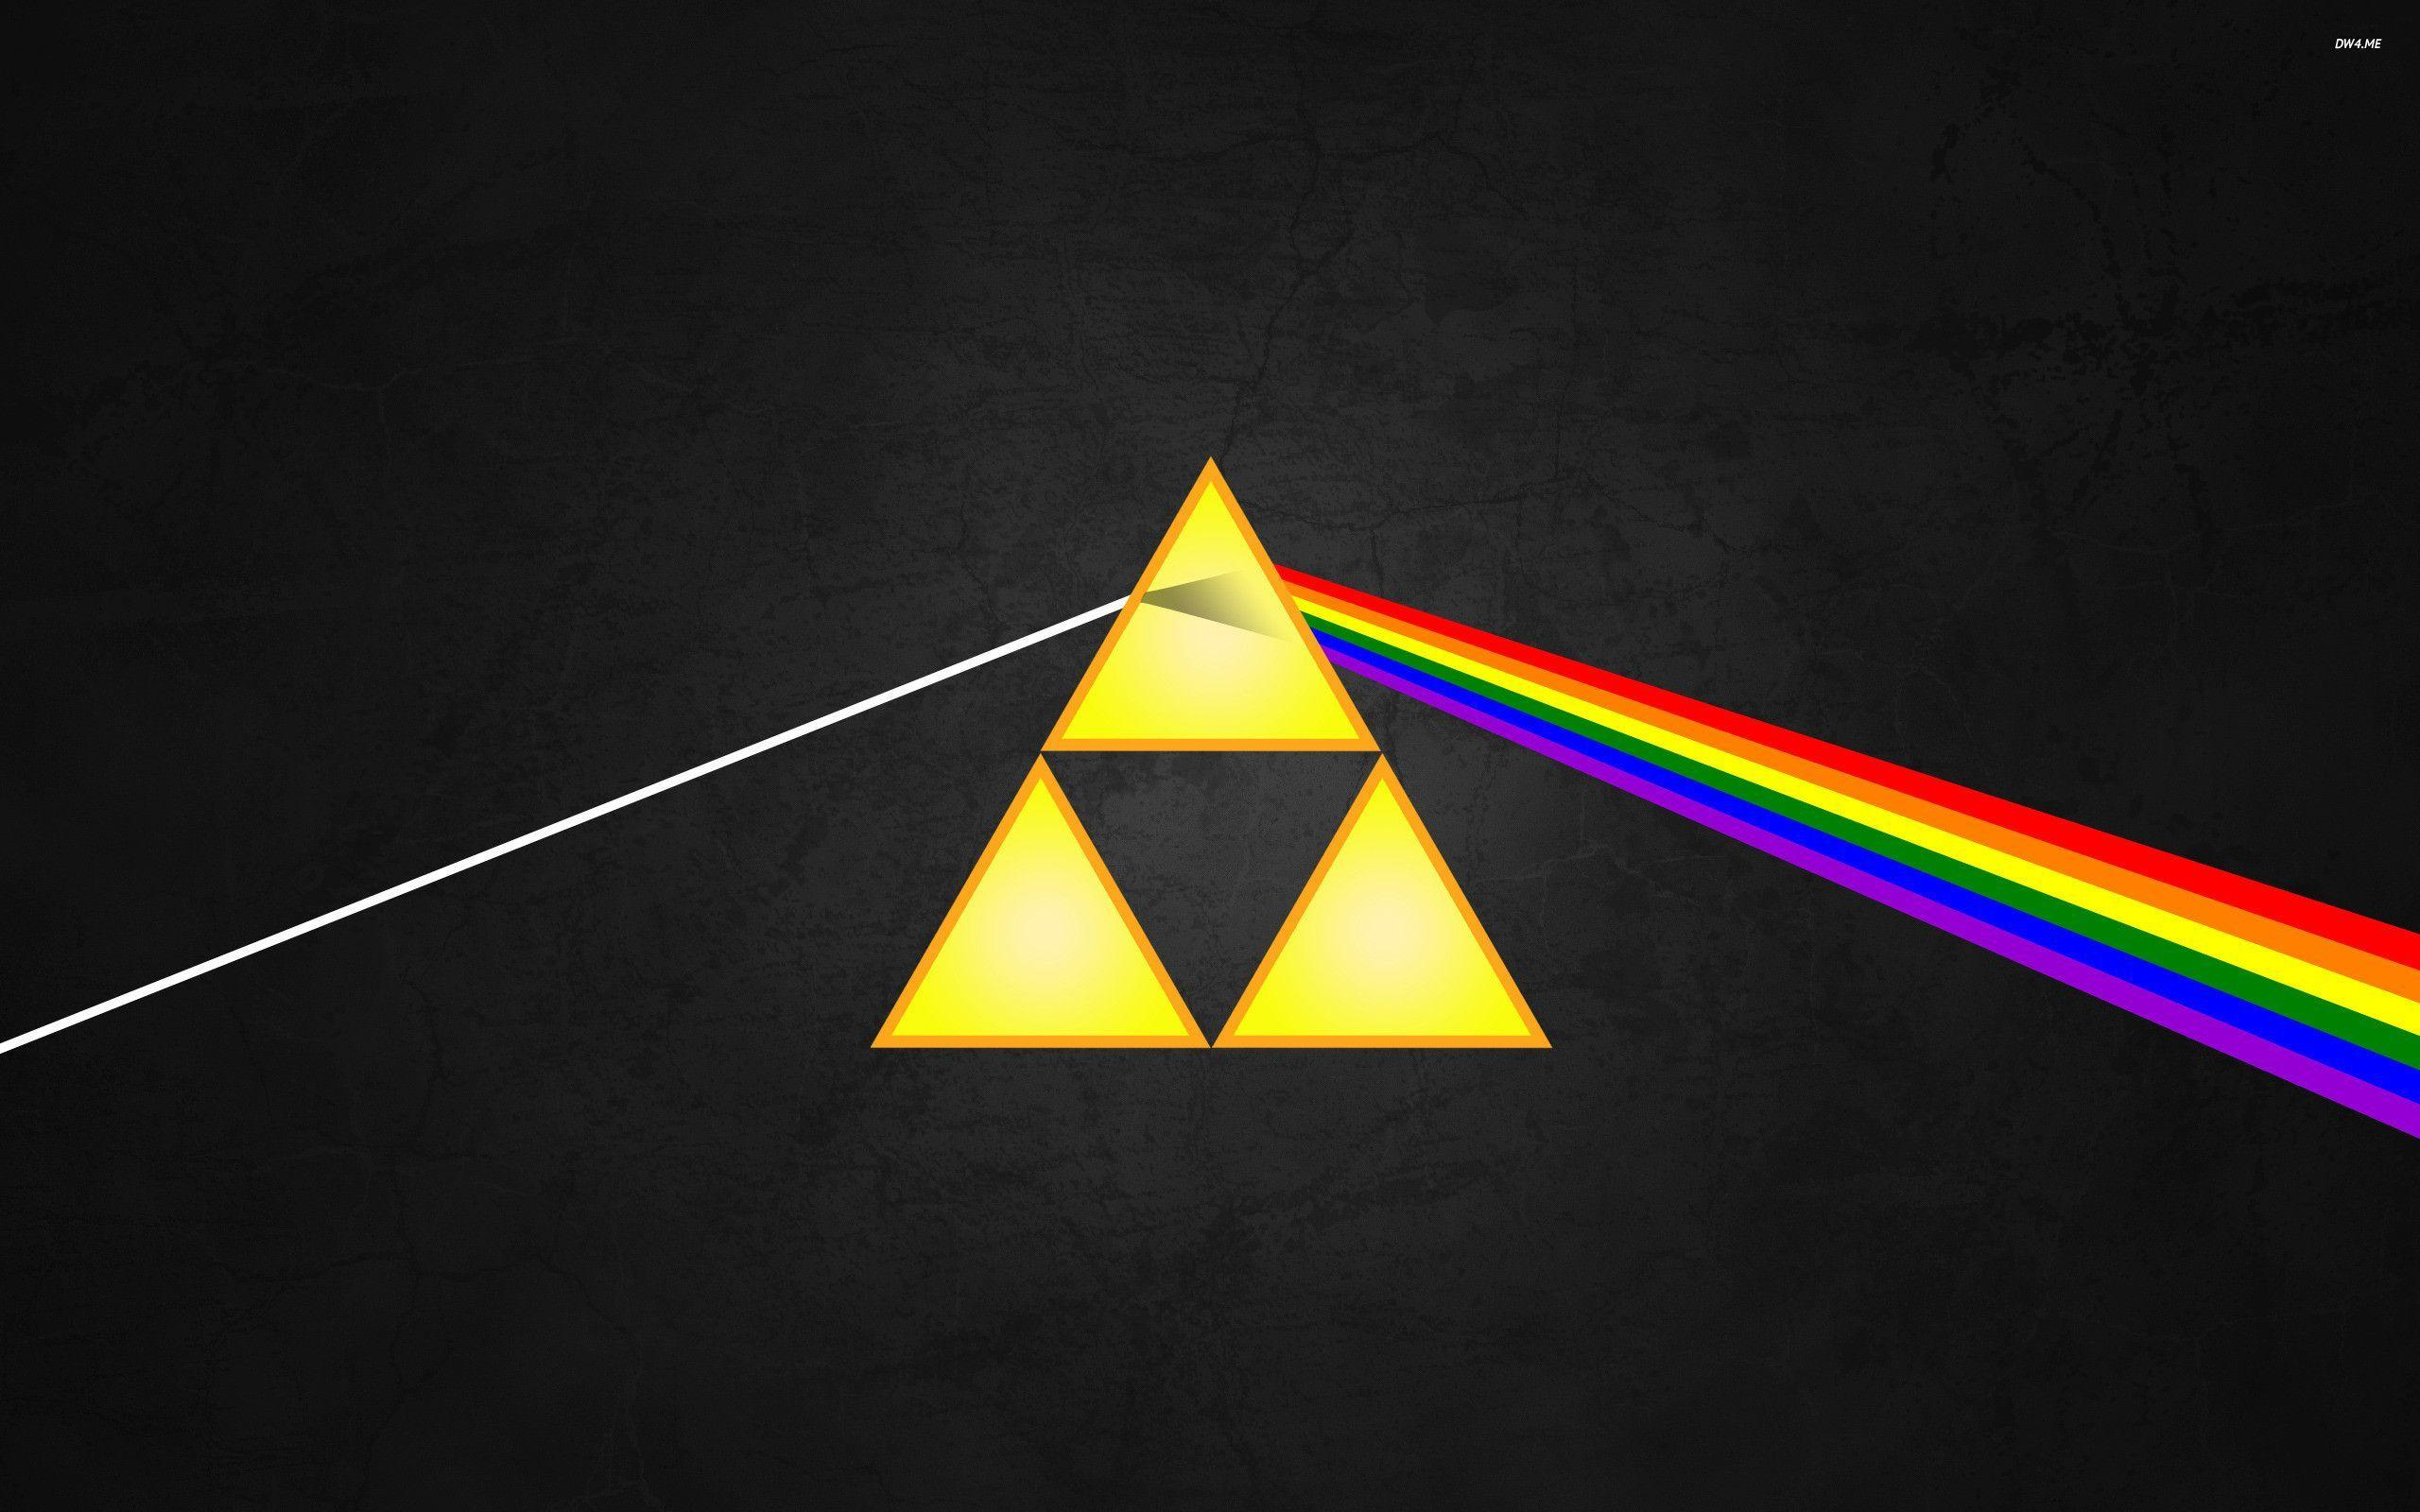 The dark side of the Triforce wallpapers